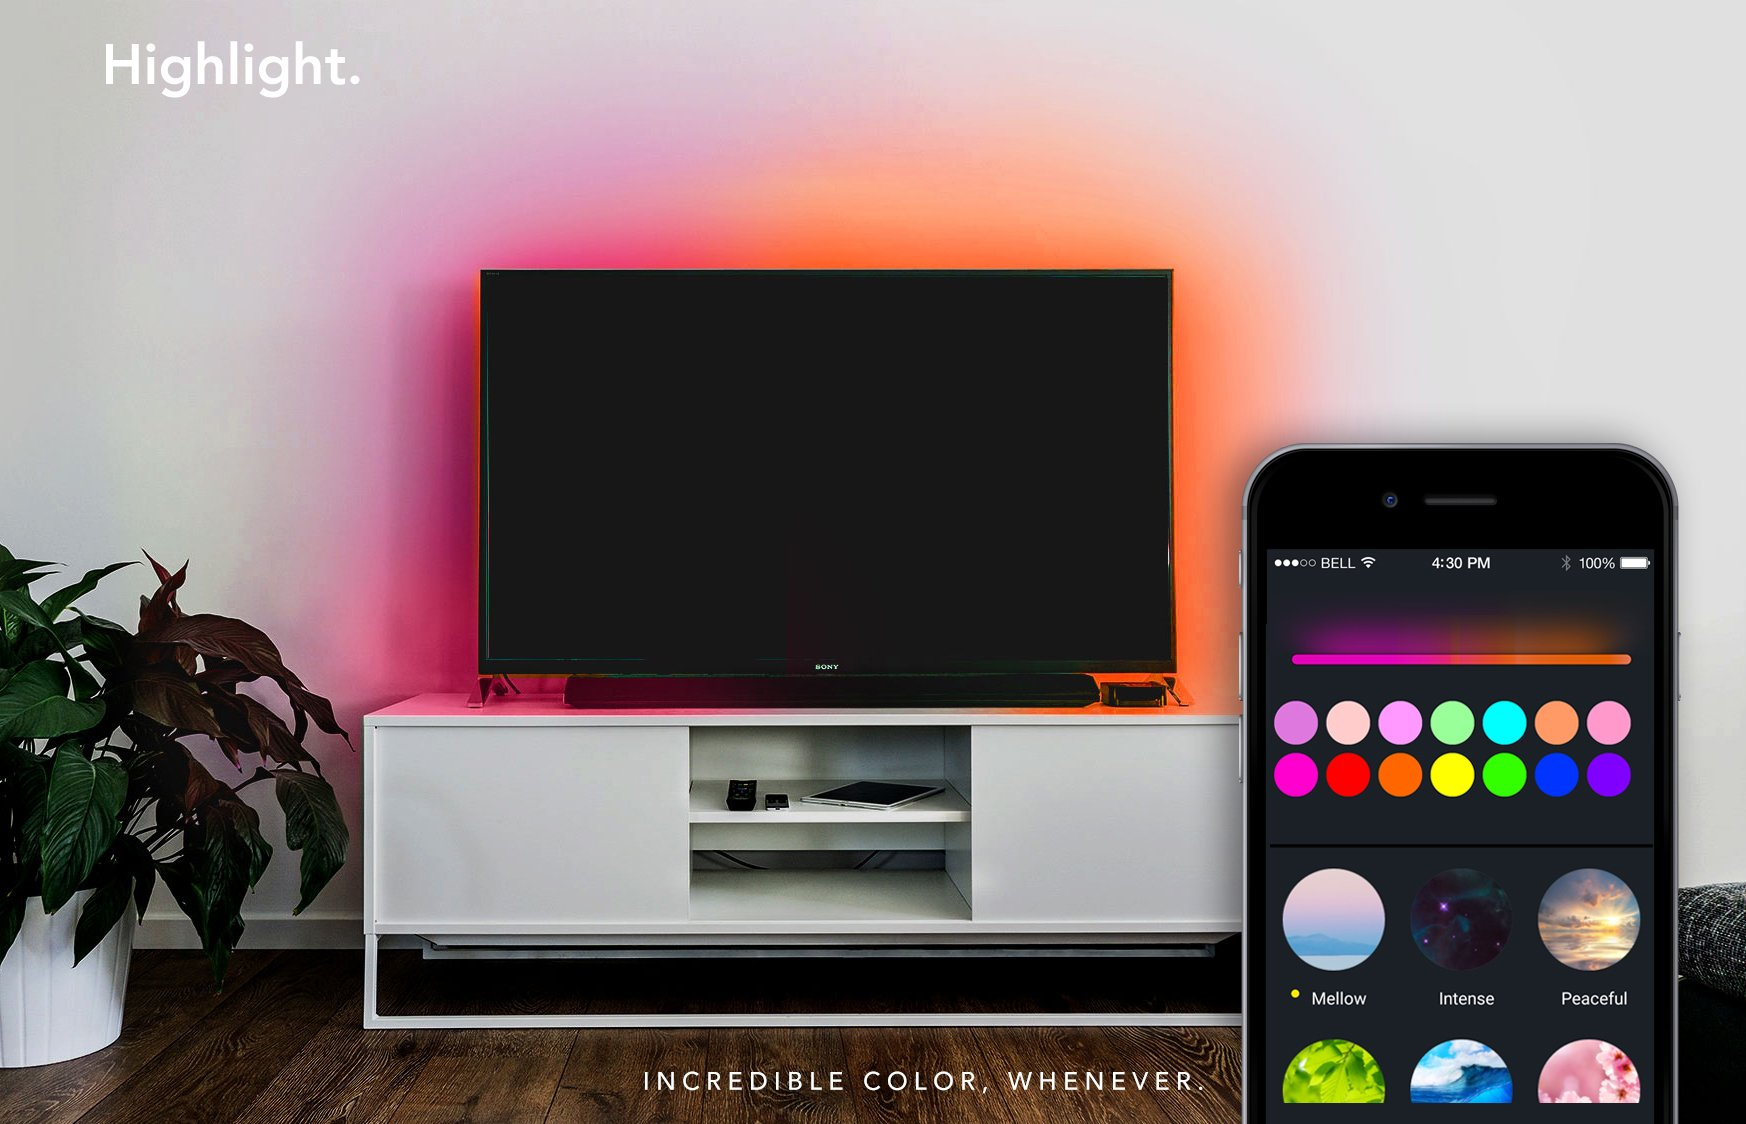 LIFX Z (Starter Kit) Wi-Fi Smart LED Light Strip (Base + 2 meters of strip), Adjustable, Multicolor, Dimmable, No Hub Required, Works with Alexa and Google Assistant by LIFX (Image #5)